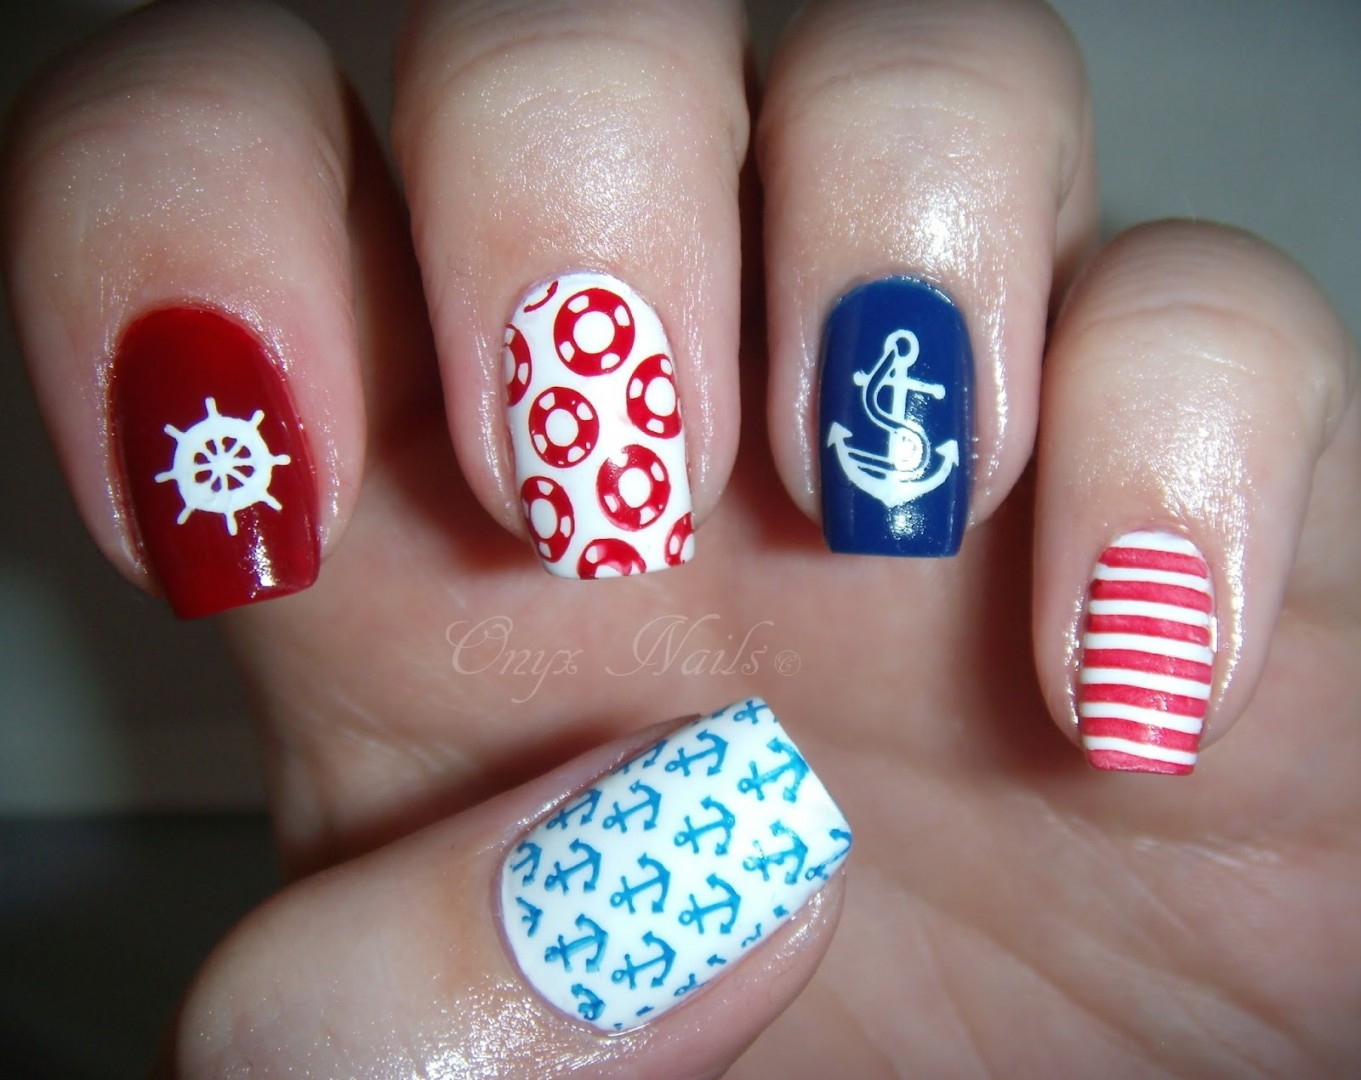 unique nail designs nautical nail art - Unique Nail Designs Nautical Nail Art - FMag.com